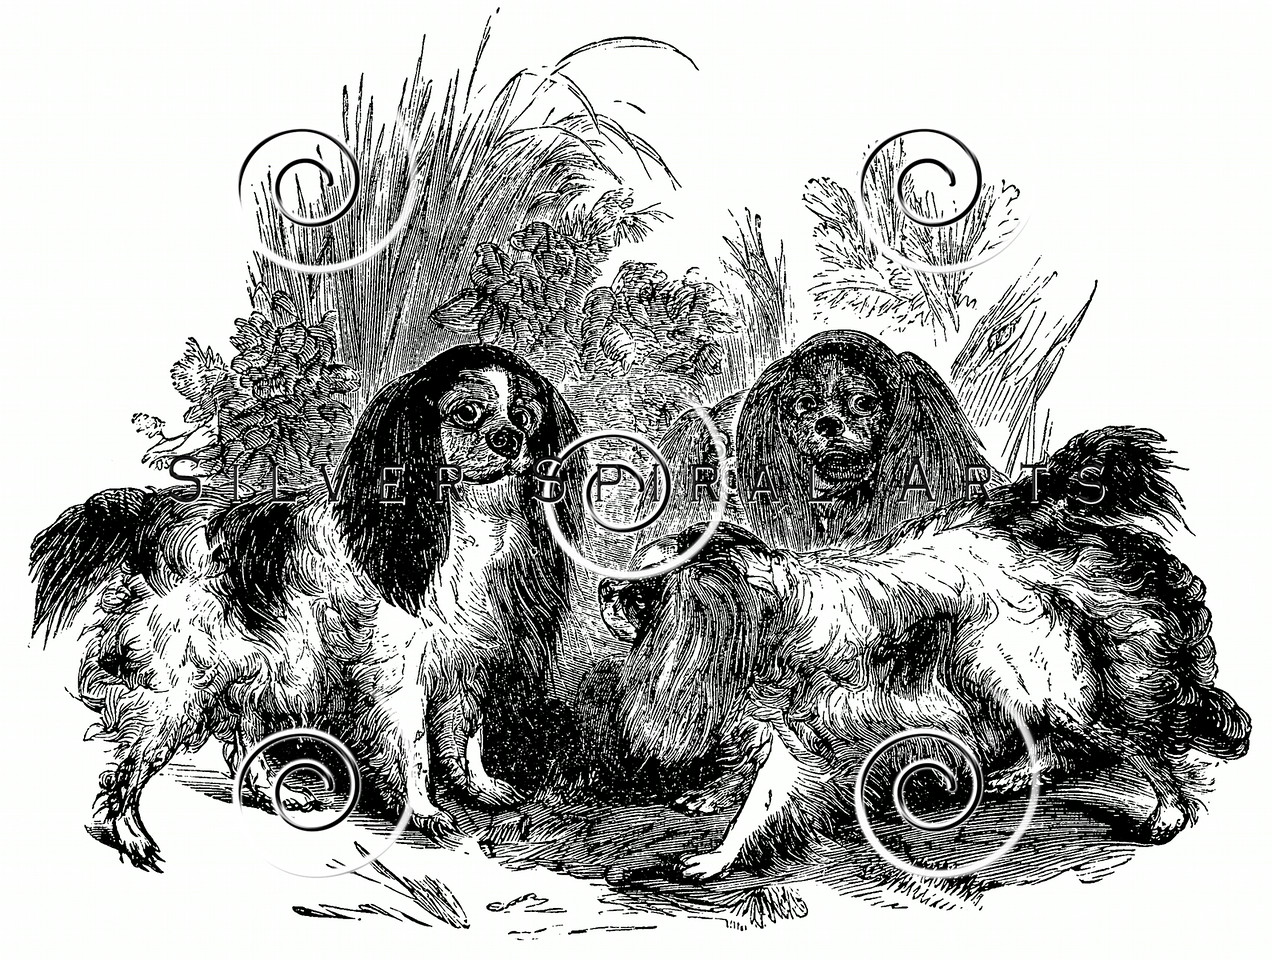 Vintage King Charles Spaniel Dogs Illustration - 1800s Dog Images